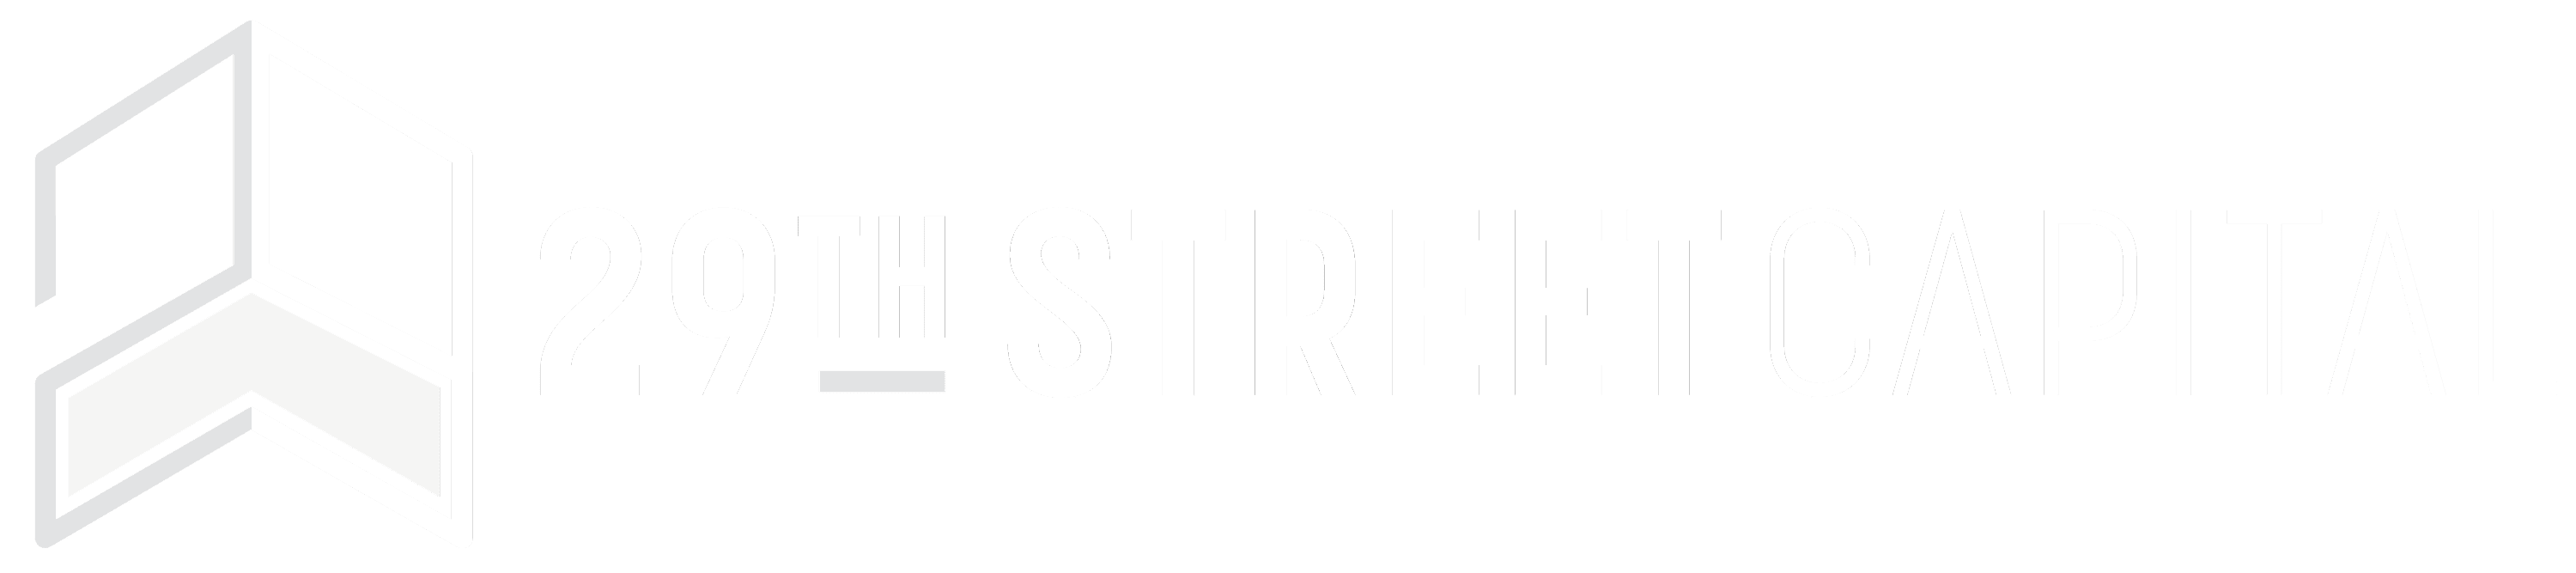 29th Street Capital LLC footer logo